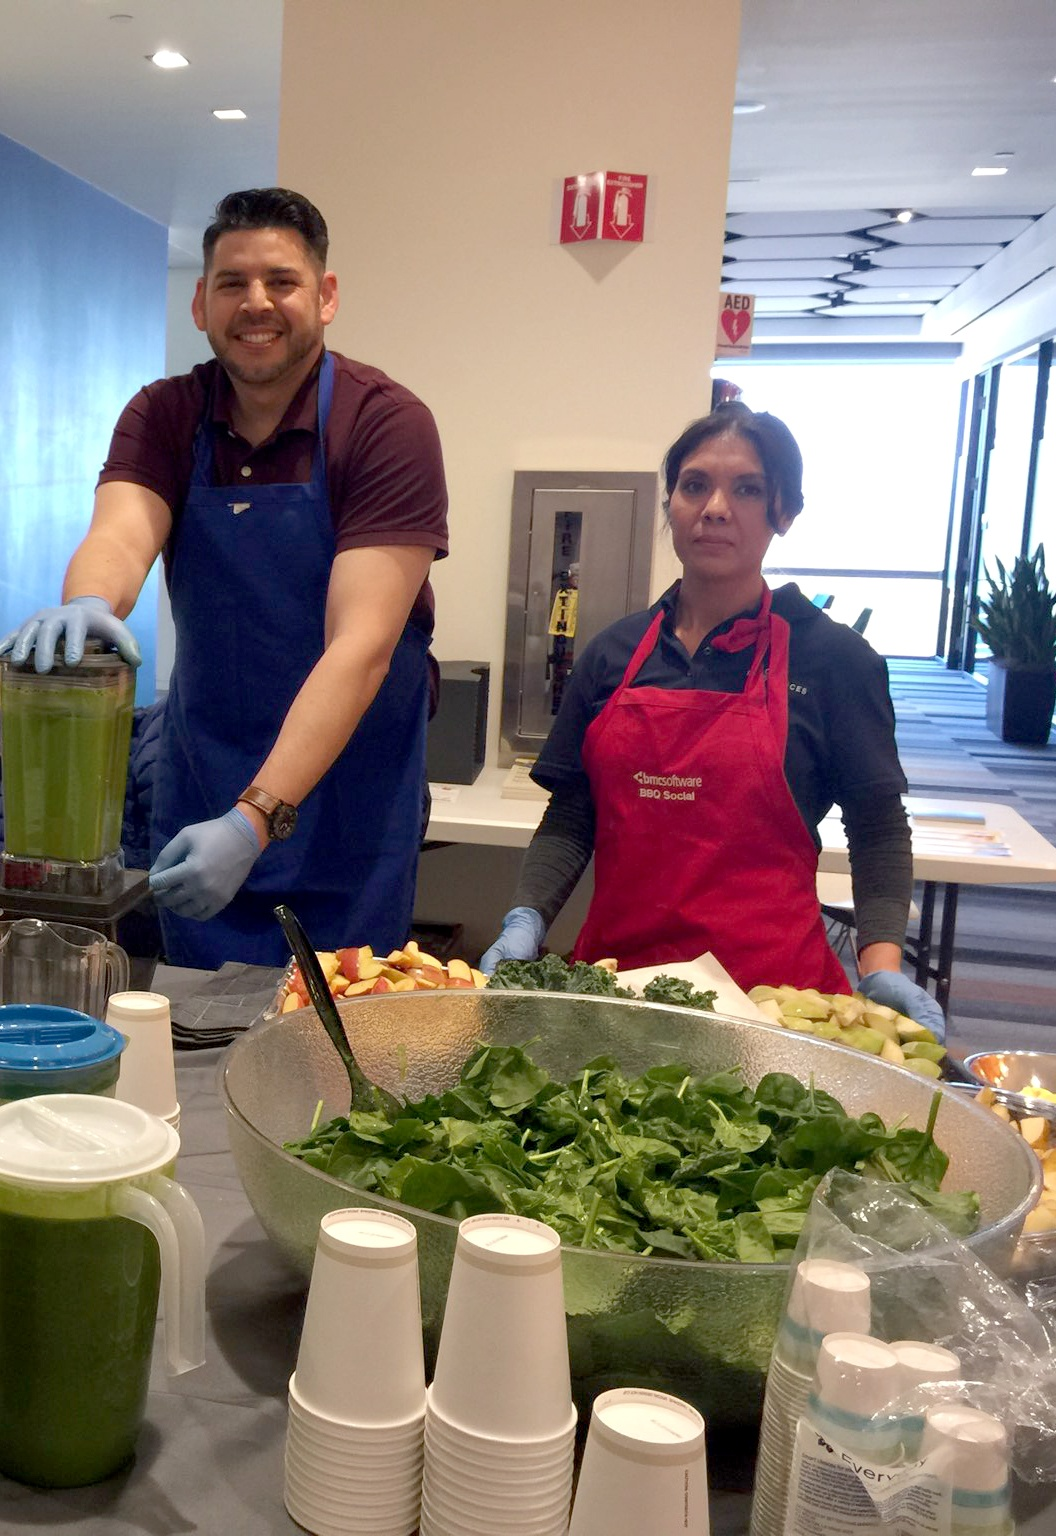 Cesar and Ana provide delicious lunches to tech companies in the San Francisco Bay Area.